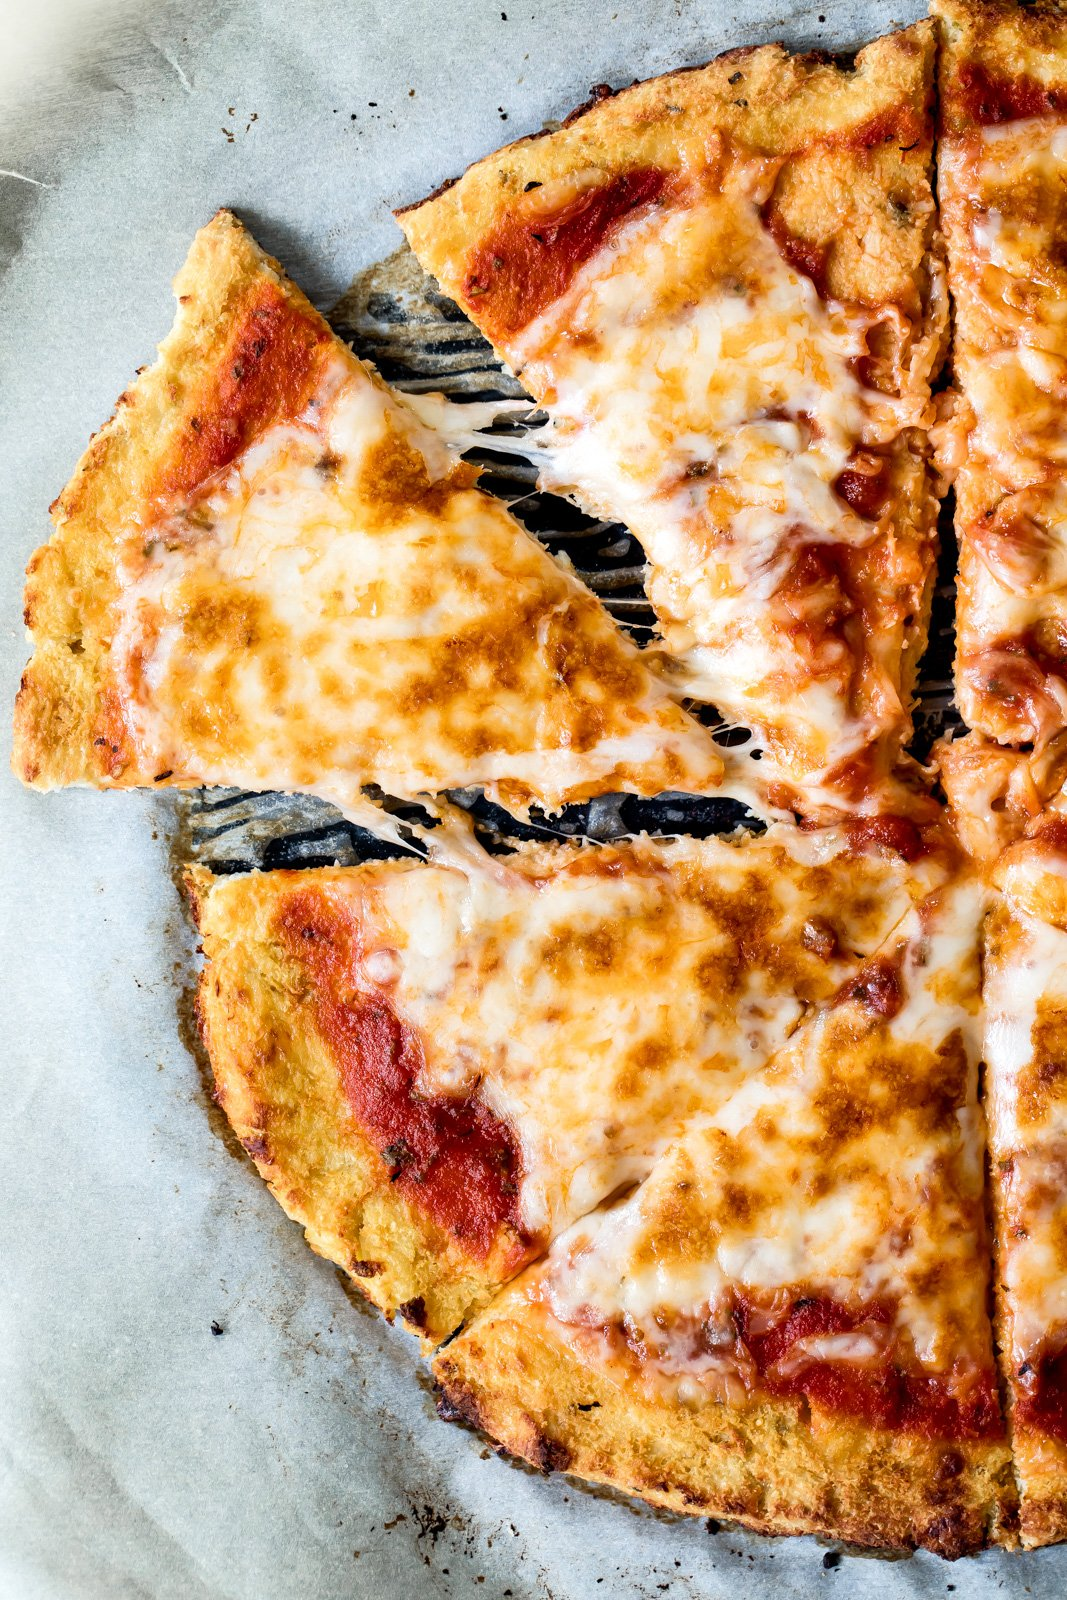 The BEST cauliflower pizza crust — so flavorful and surprisingly easy to make. Low carb, nutritious, fiber & protein packed. Topped the crust with whatever your heart desires. You're going to be making this again and again!